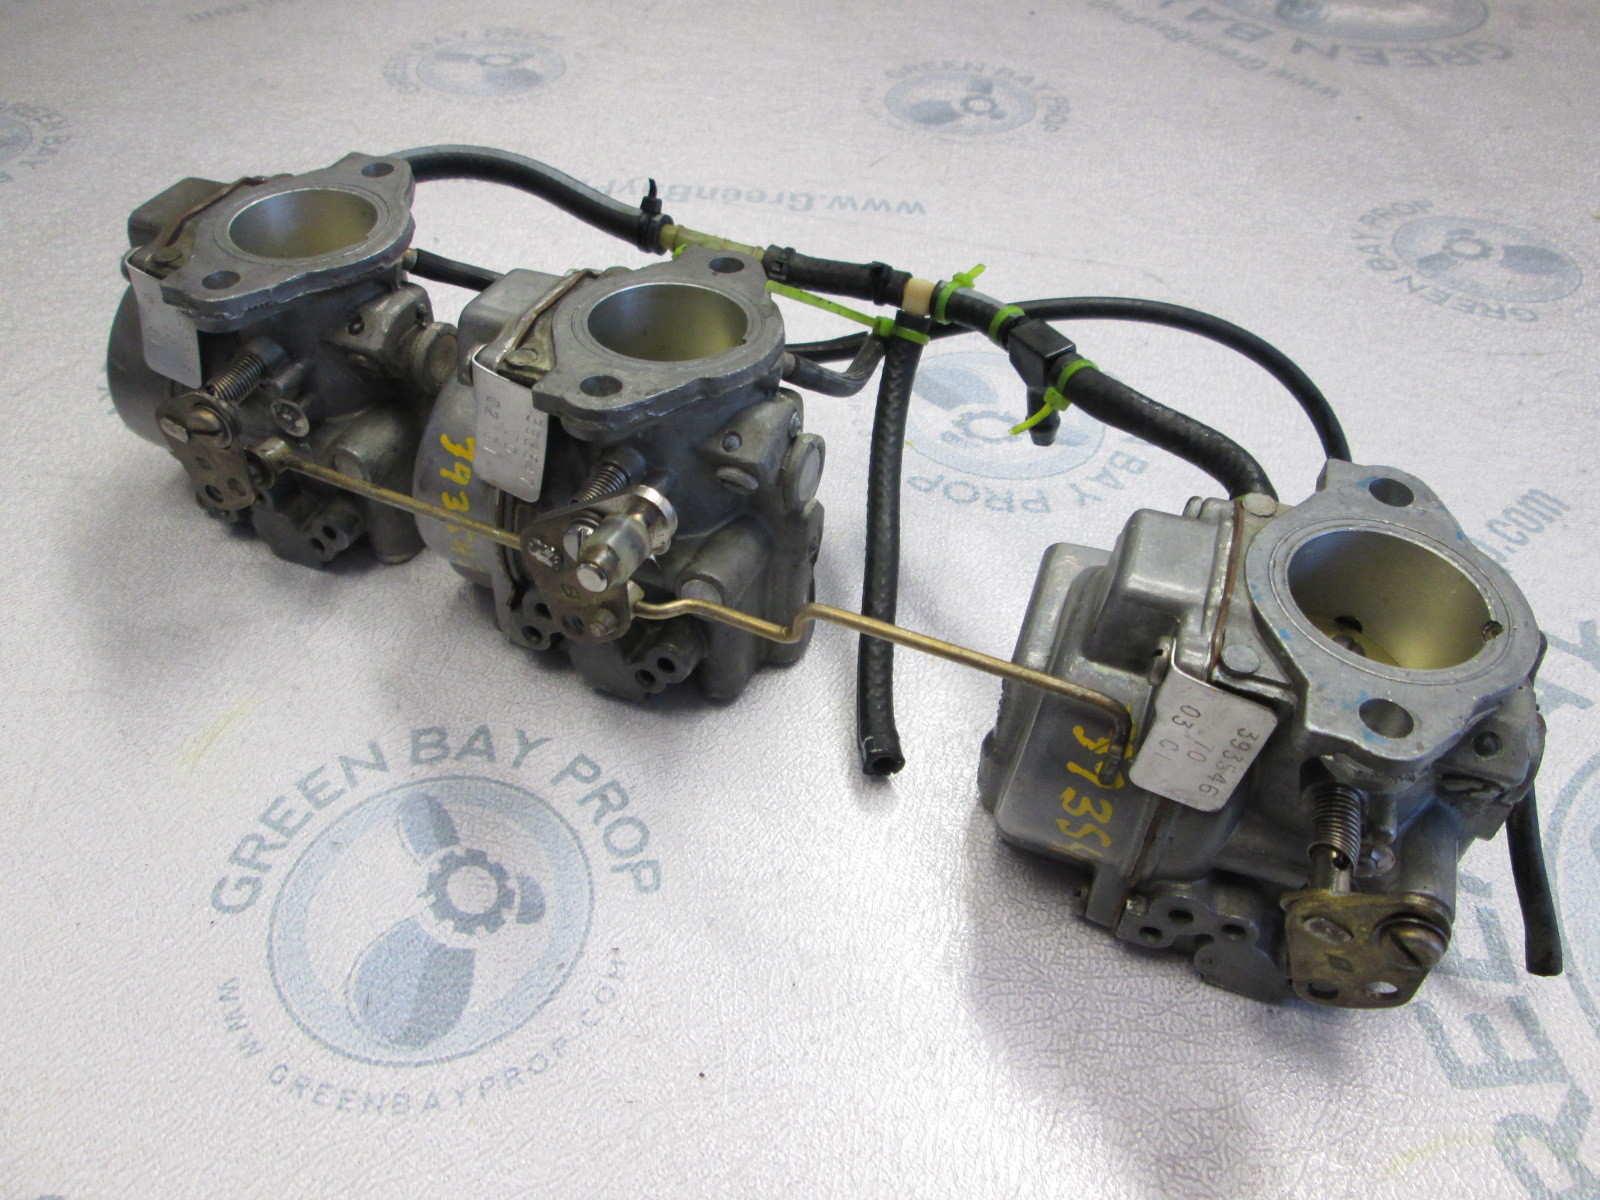 0393546 0393547 evinrude johnson 70 75 hp 3 cyl outboard for 70 hp evinrude outboard motor for sale